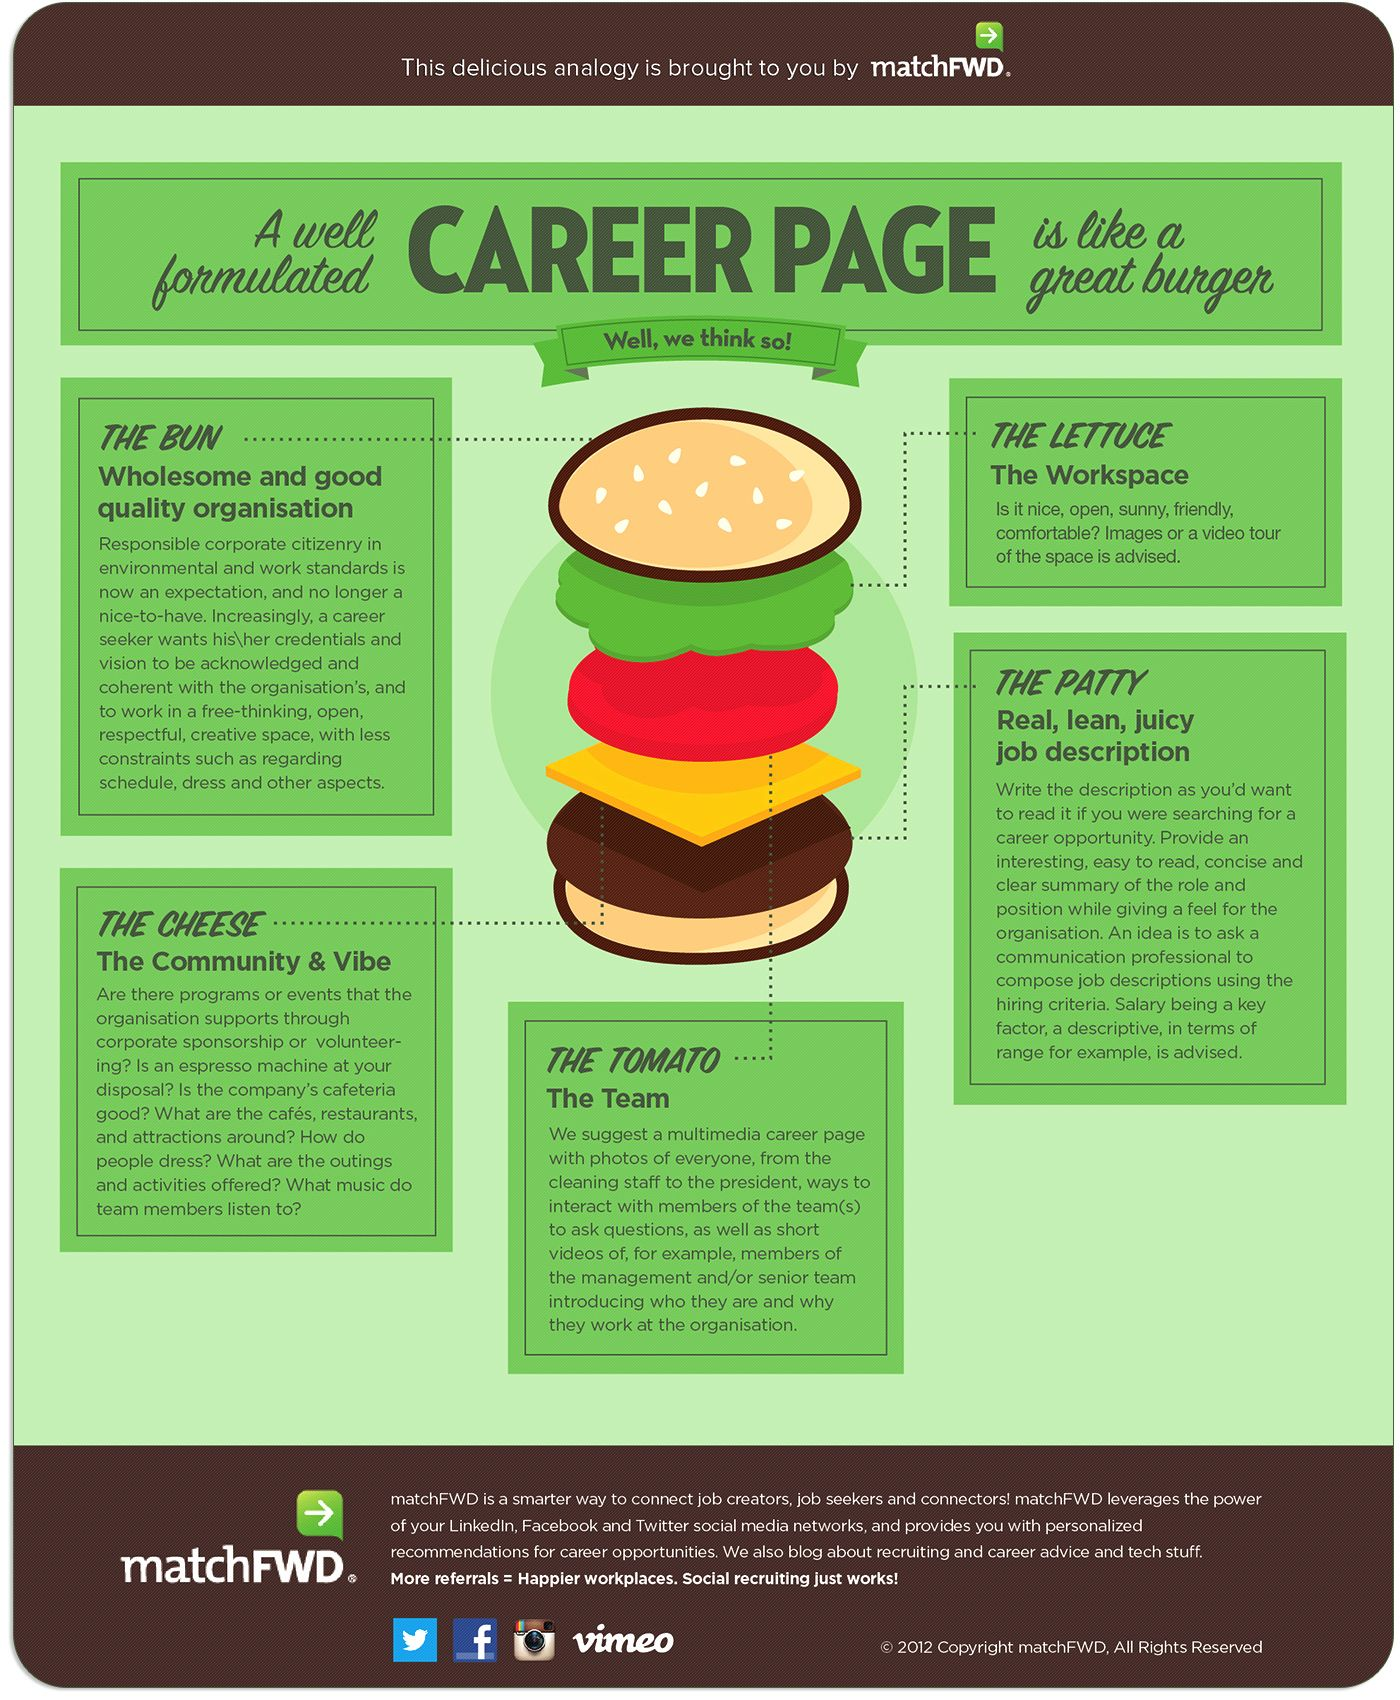 A Good Career Page Is Like A Tasty Burger Infographic Delicious Burgers Best Careers Career